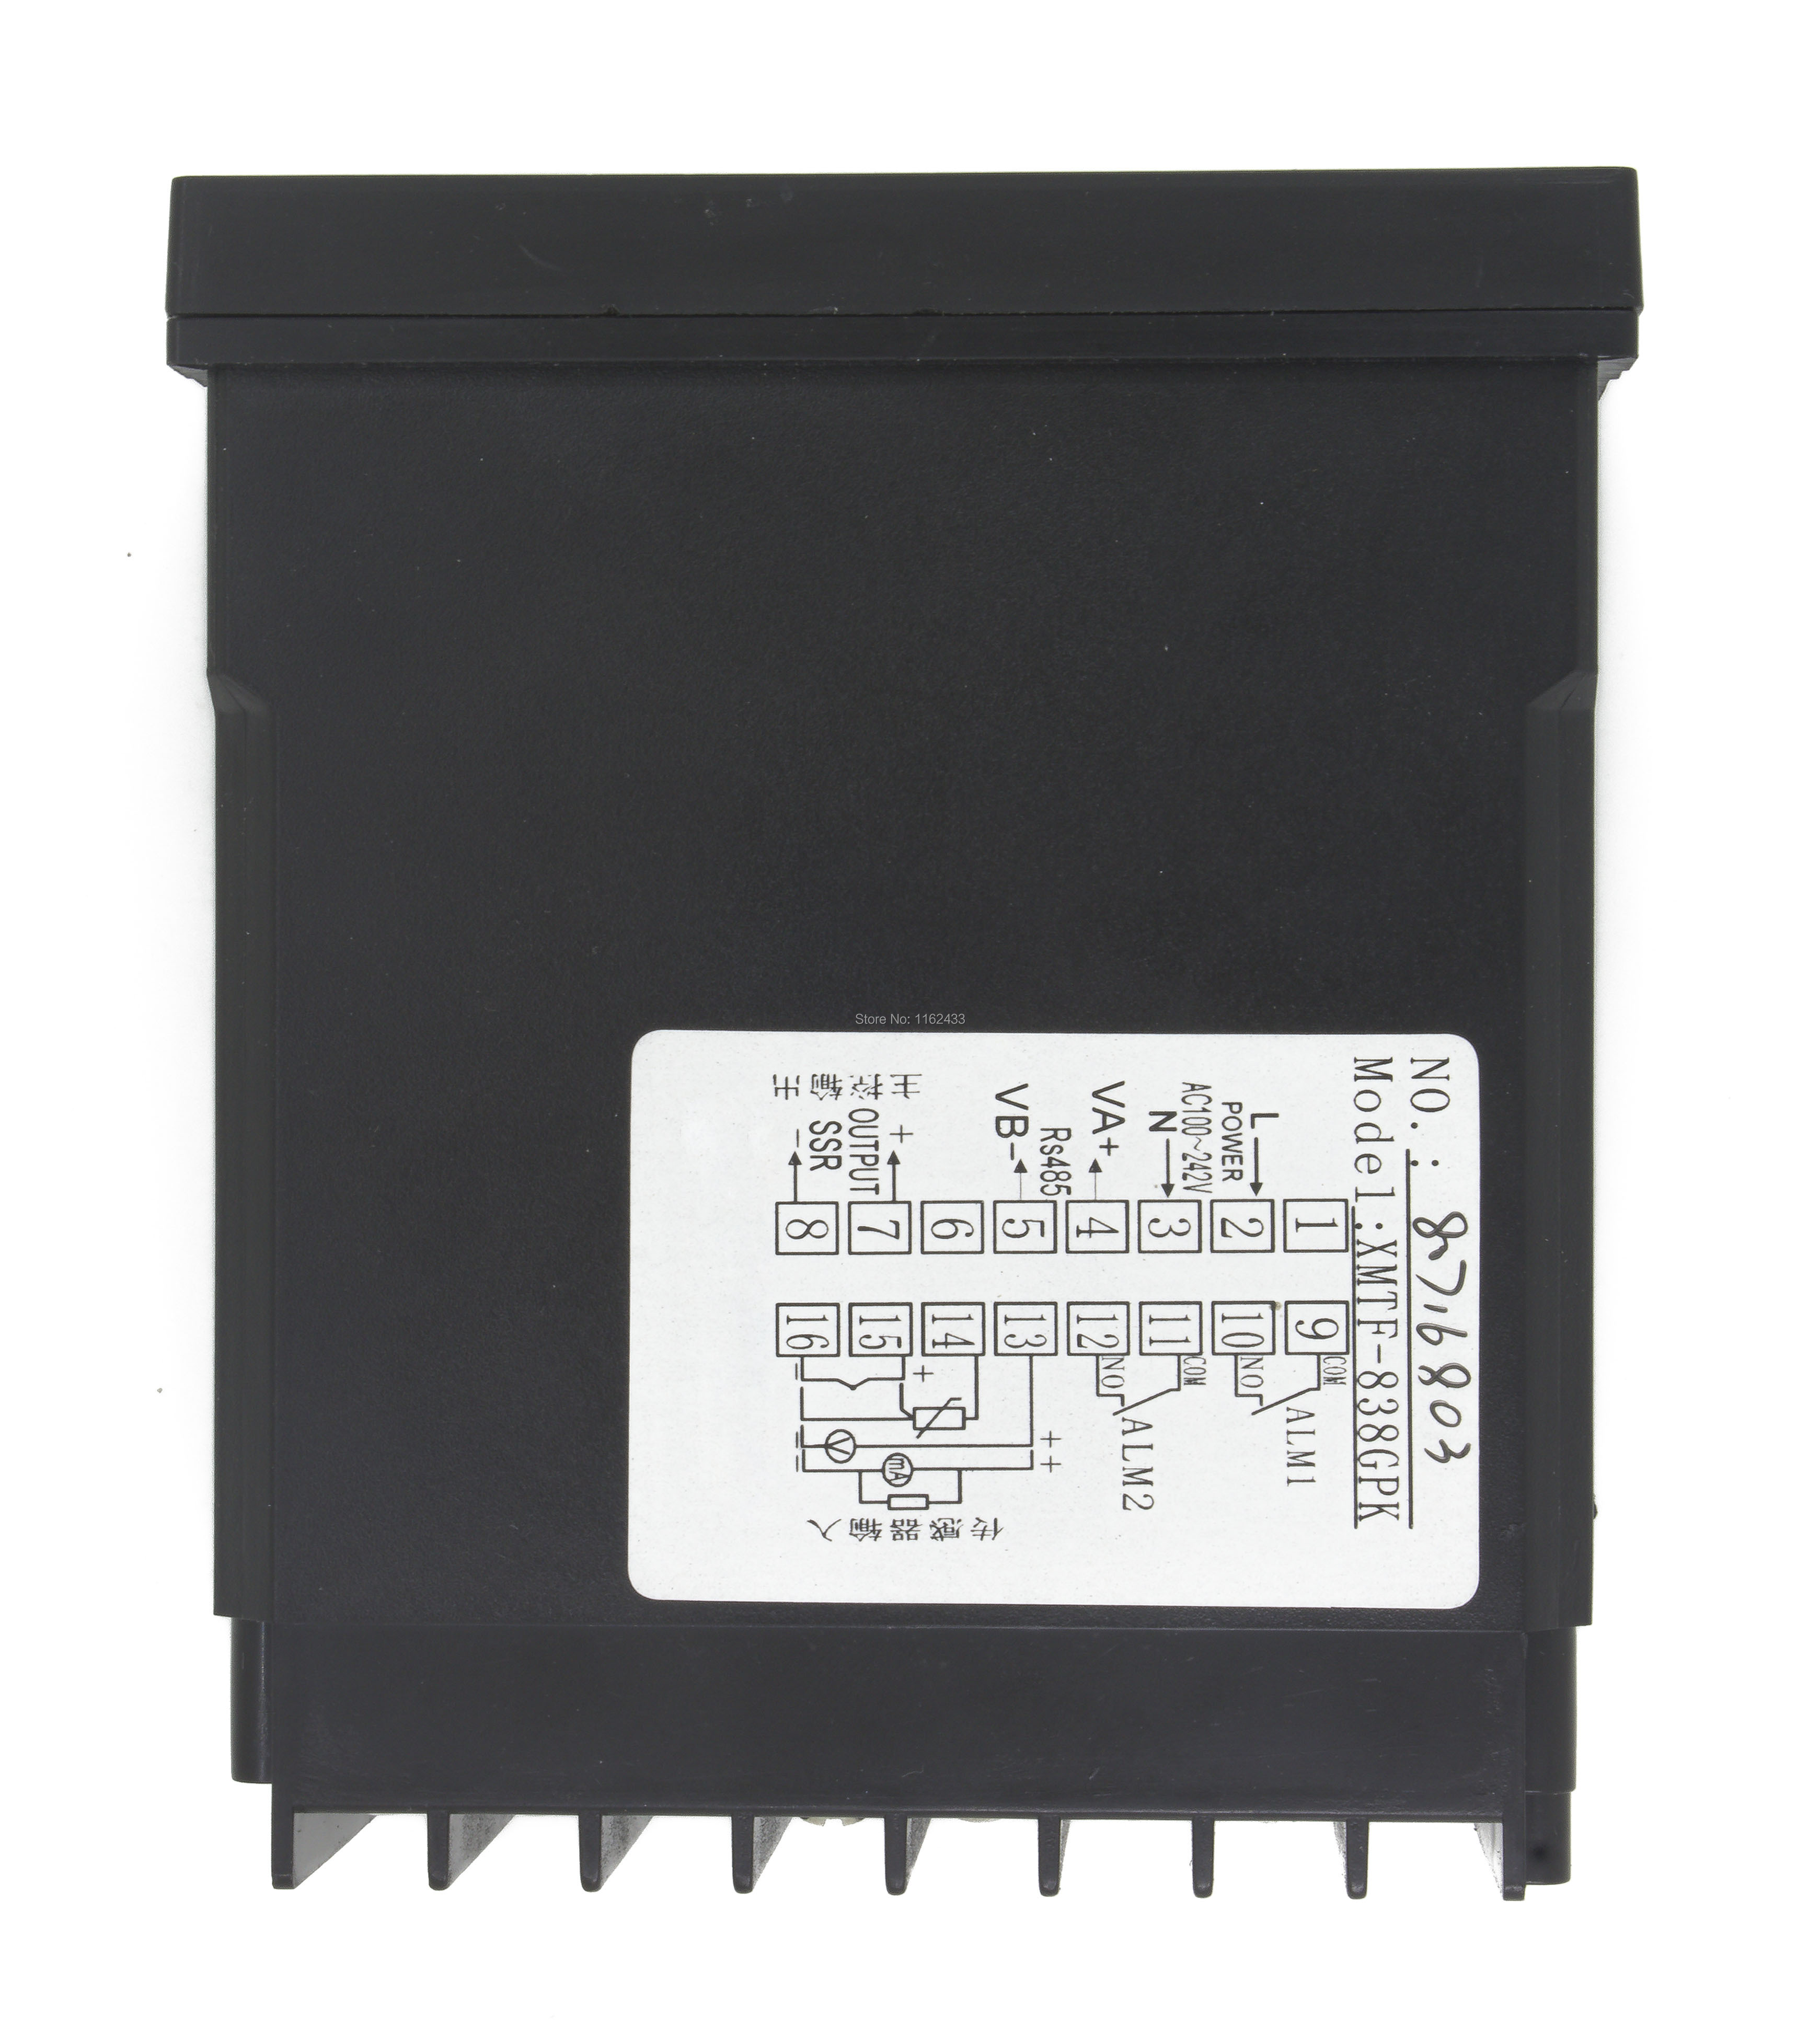 small resolution of xmtf 8 rs485 modbus interface ramp soak digital temperature controller relay ssr 0 22ma scr output in temperature instruments from tools on aliexpress com